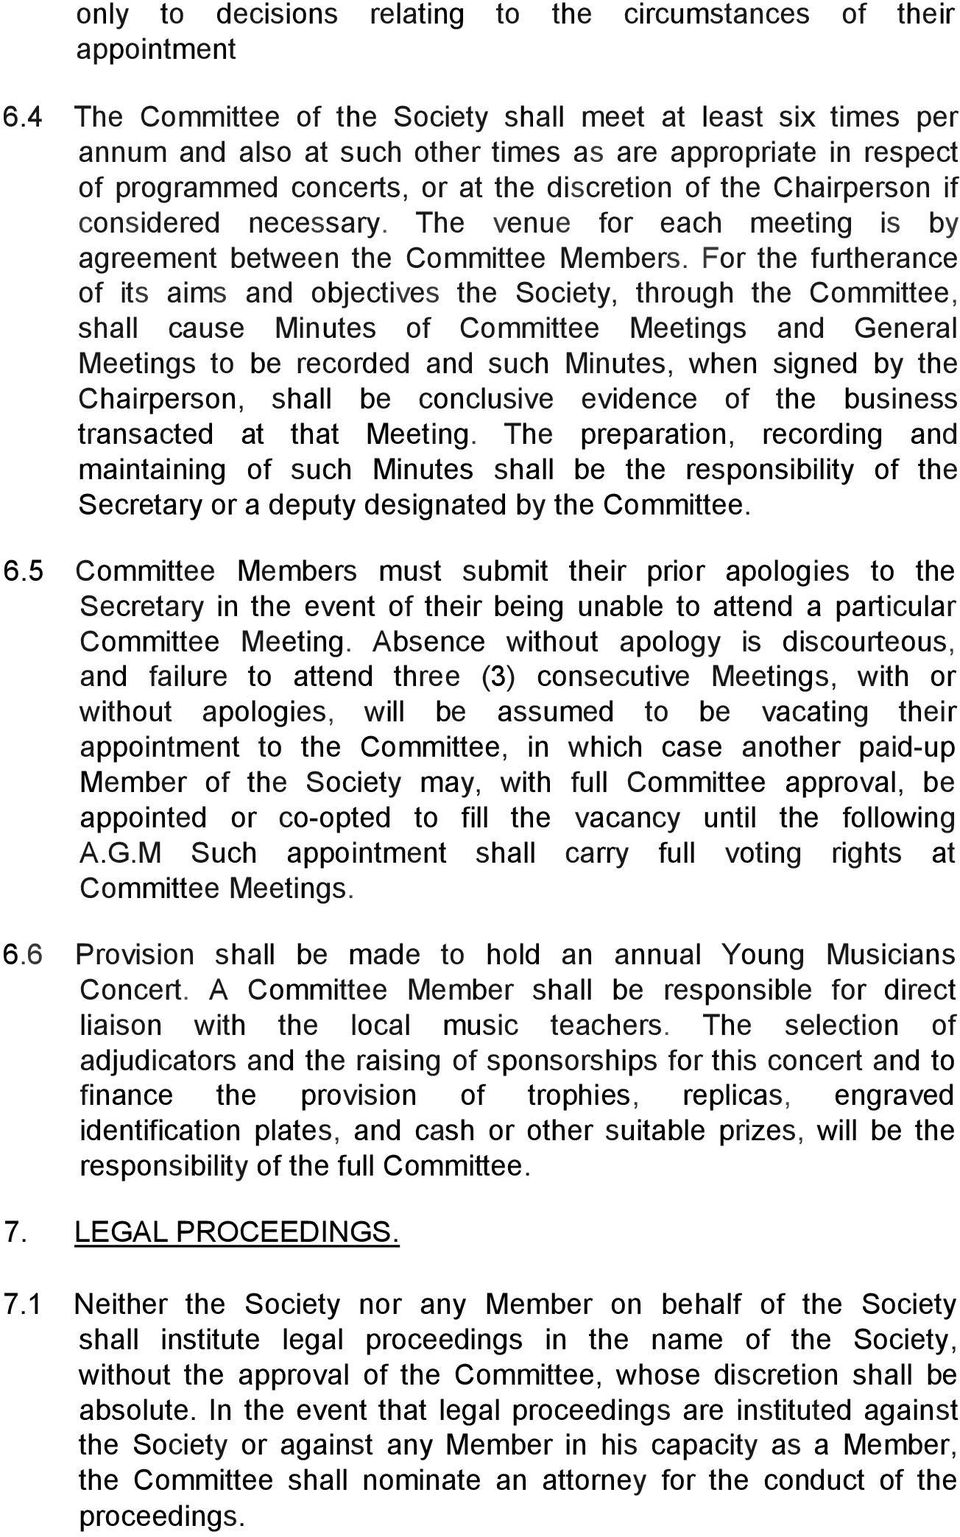 considered necessary. The venue for each meeting is by agreement between the Committee Members.